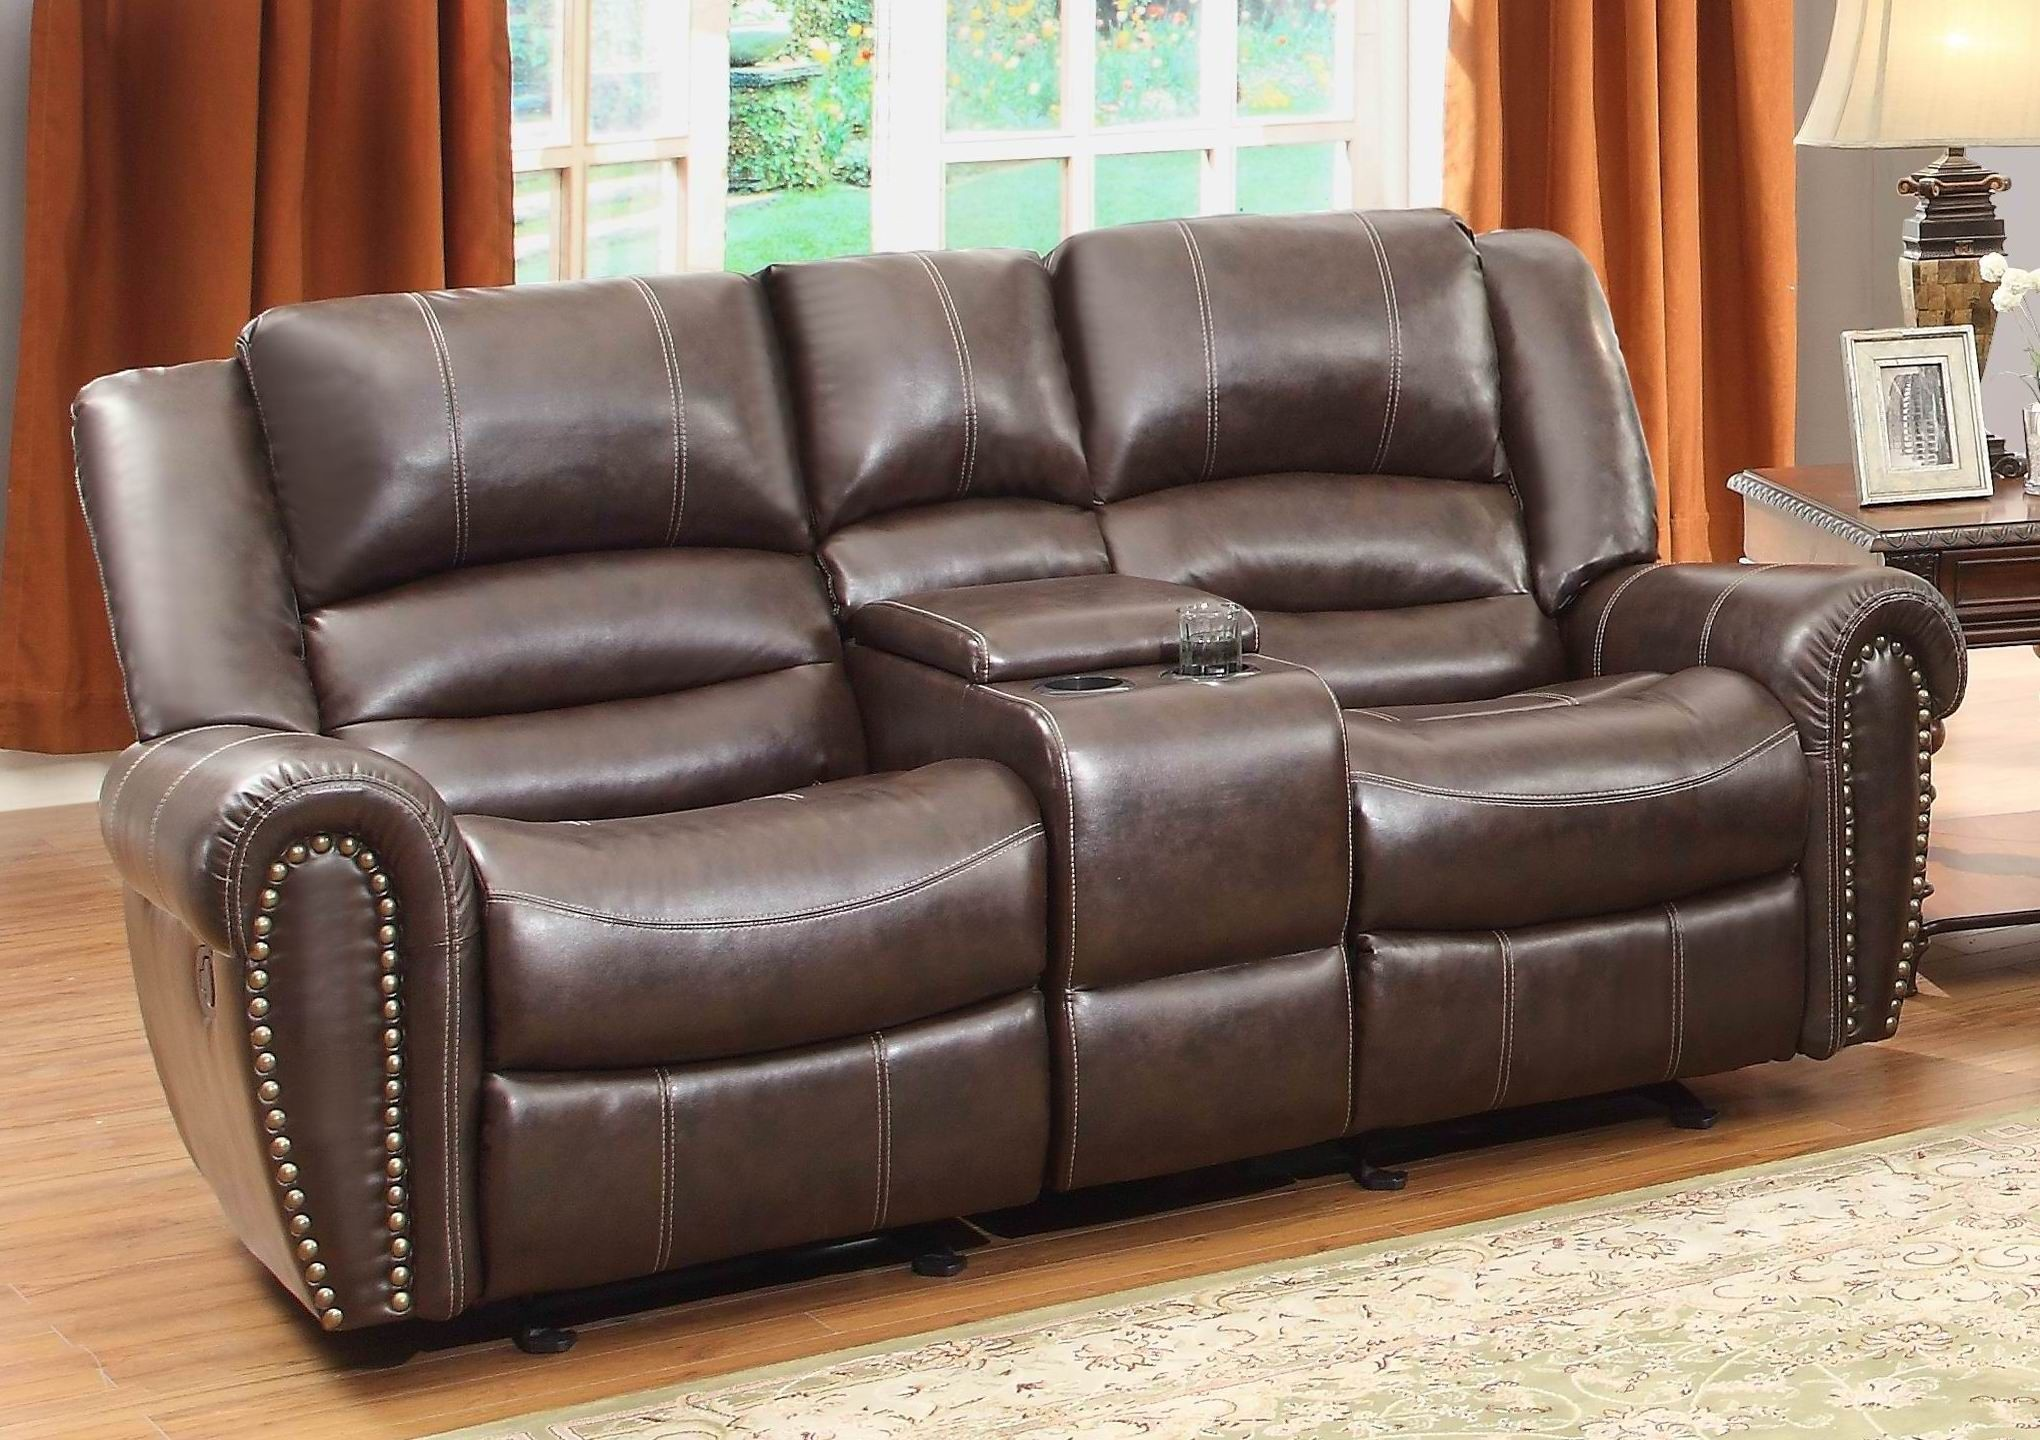 Center hill brown double glider reclining loveseat with console 9668brw 2 homelegance Reclining loveseat with center console